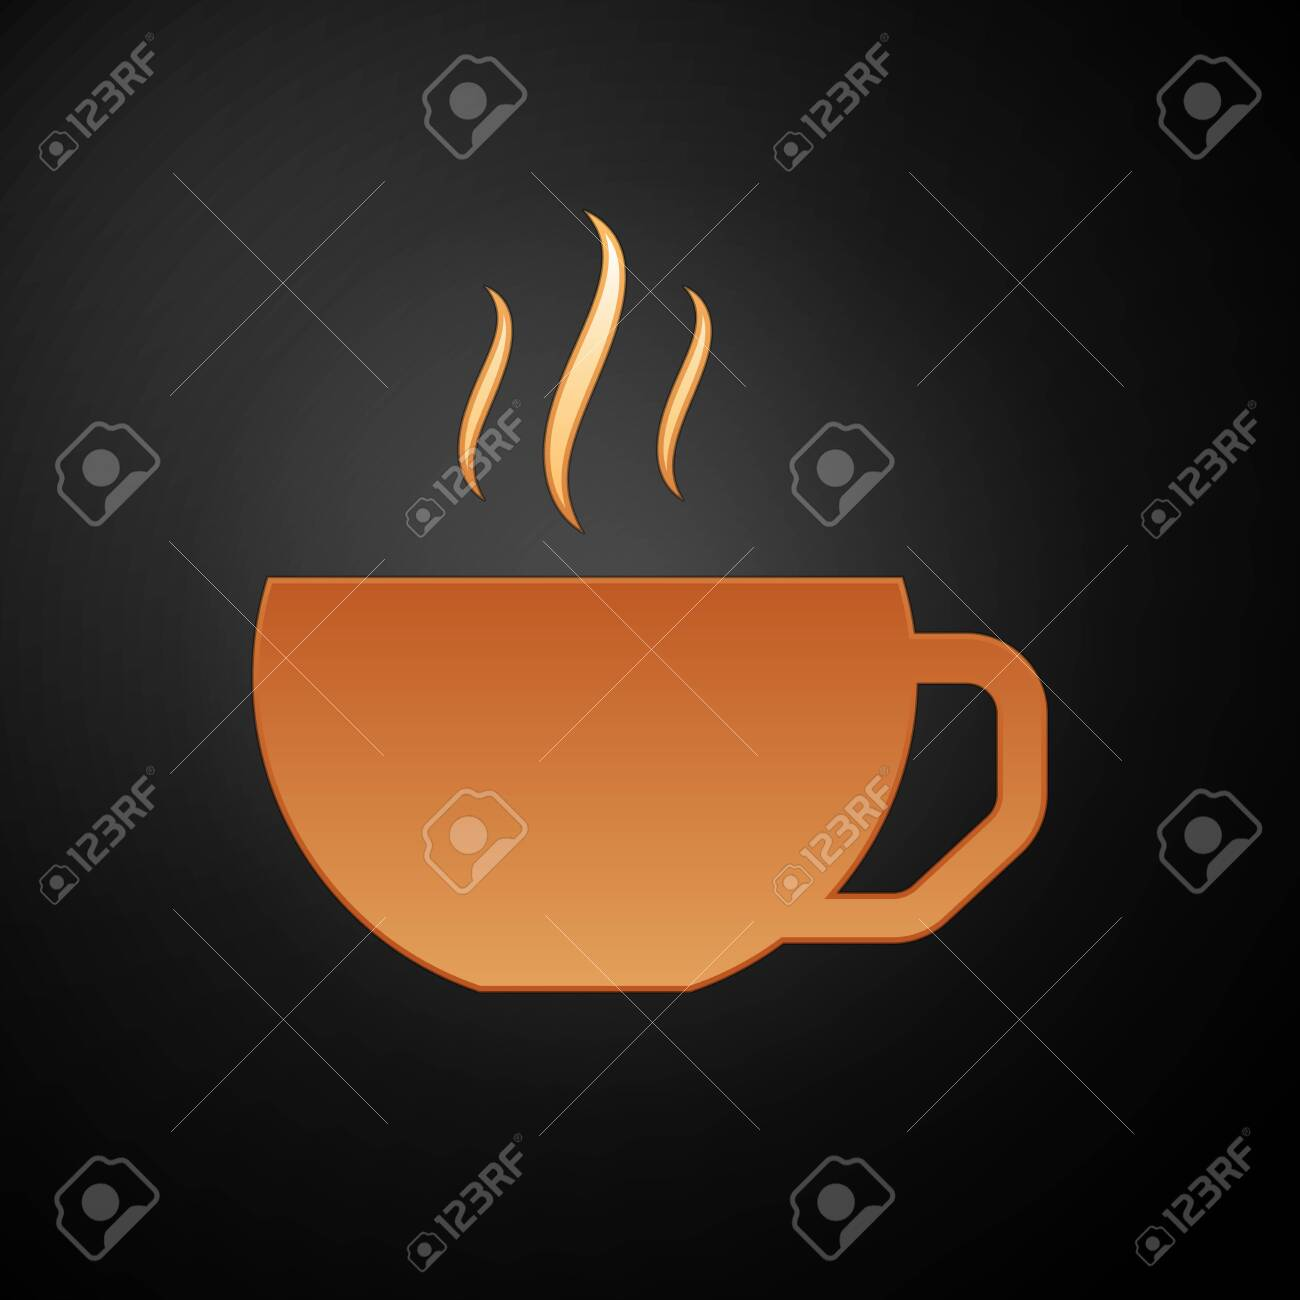 gold coffee cup flat icon isolated on black background tea cup royalty free cliparts vectors and stock illustration image 129872511 gold coffee cup flat icon isolated on black background tea cup